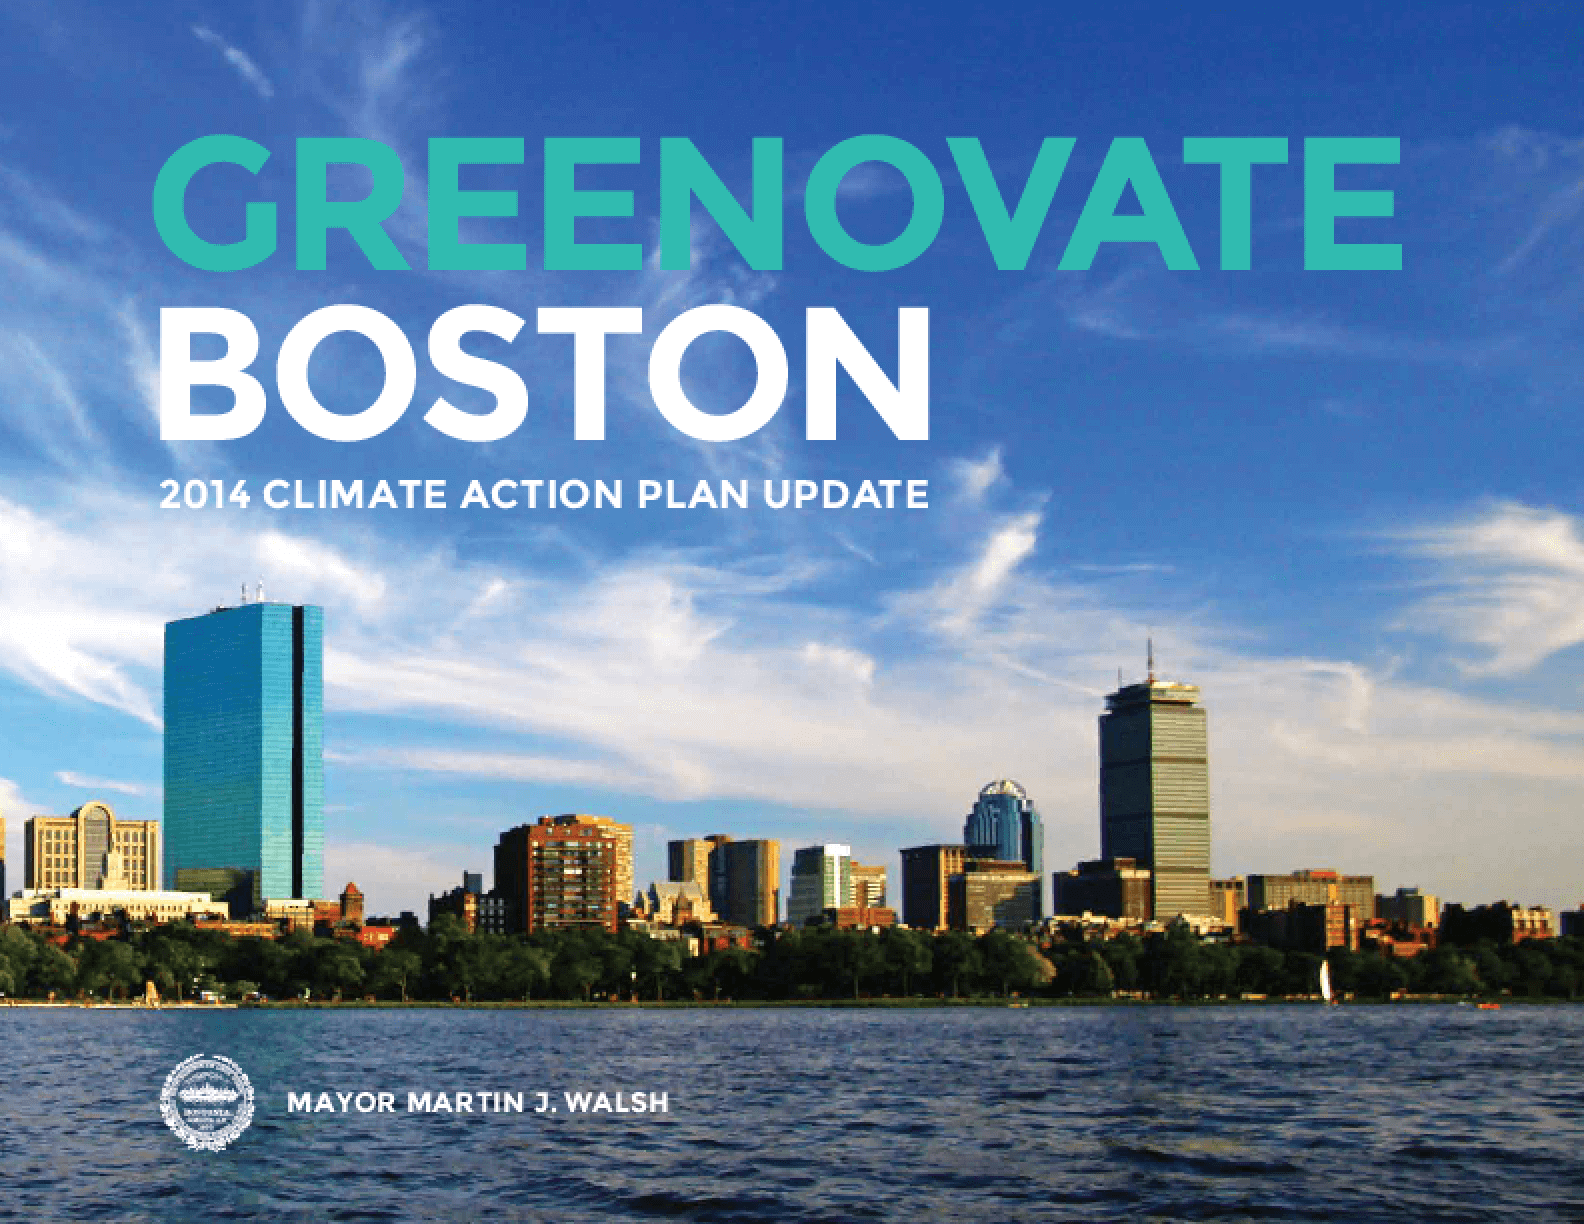 Greenovate Boston: 2014 Climate Action Plan Update